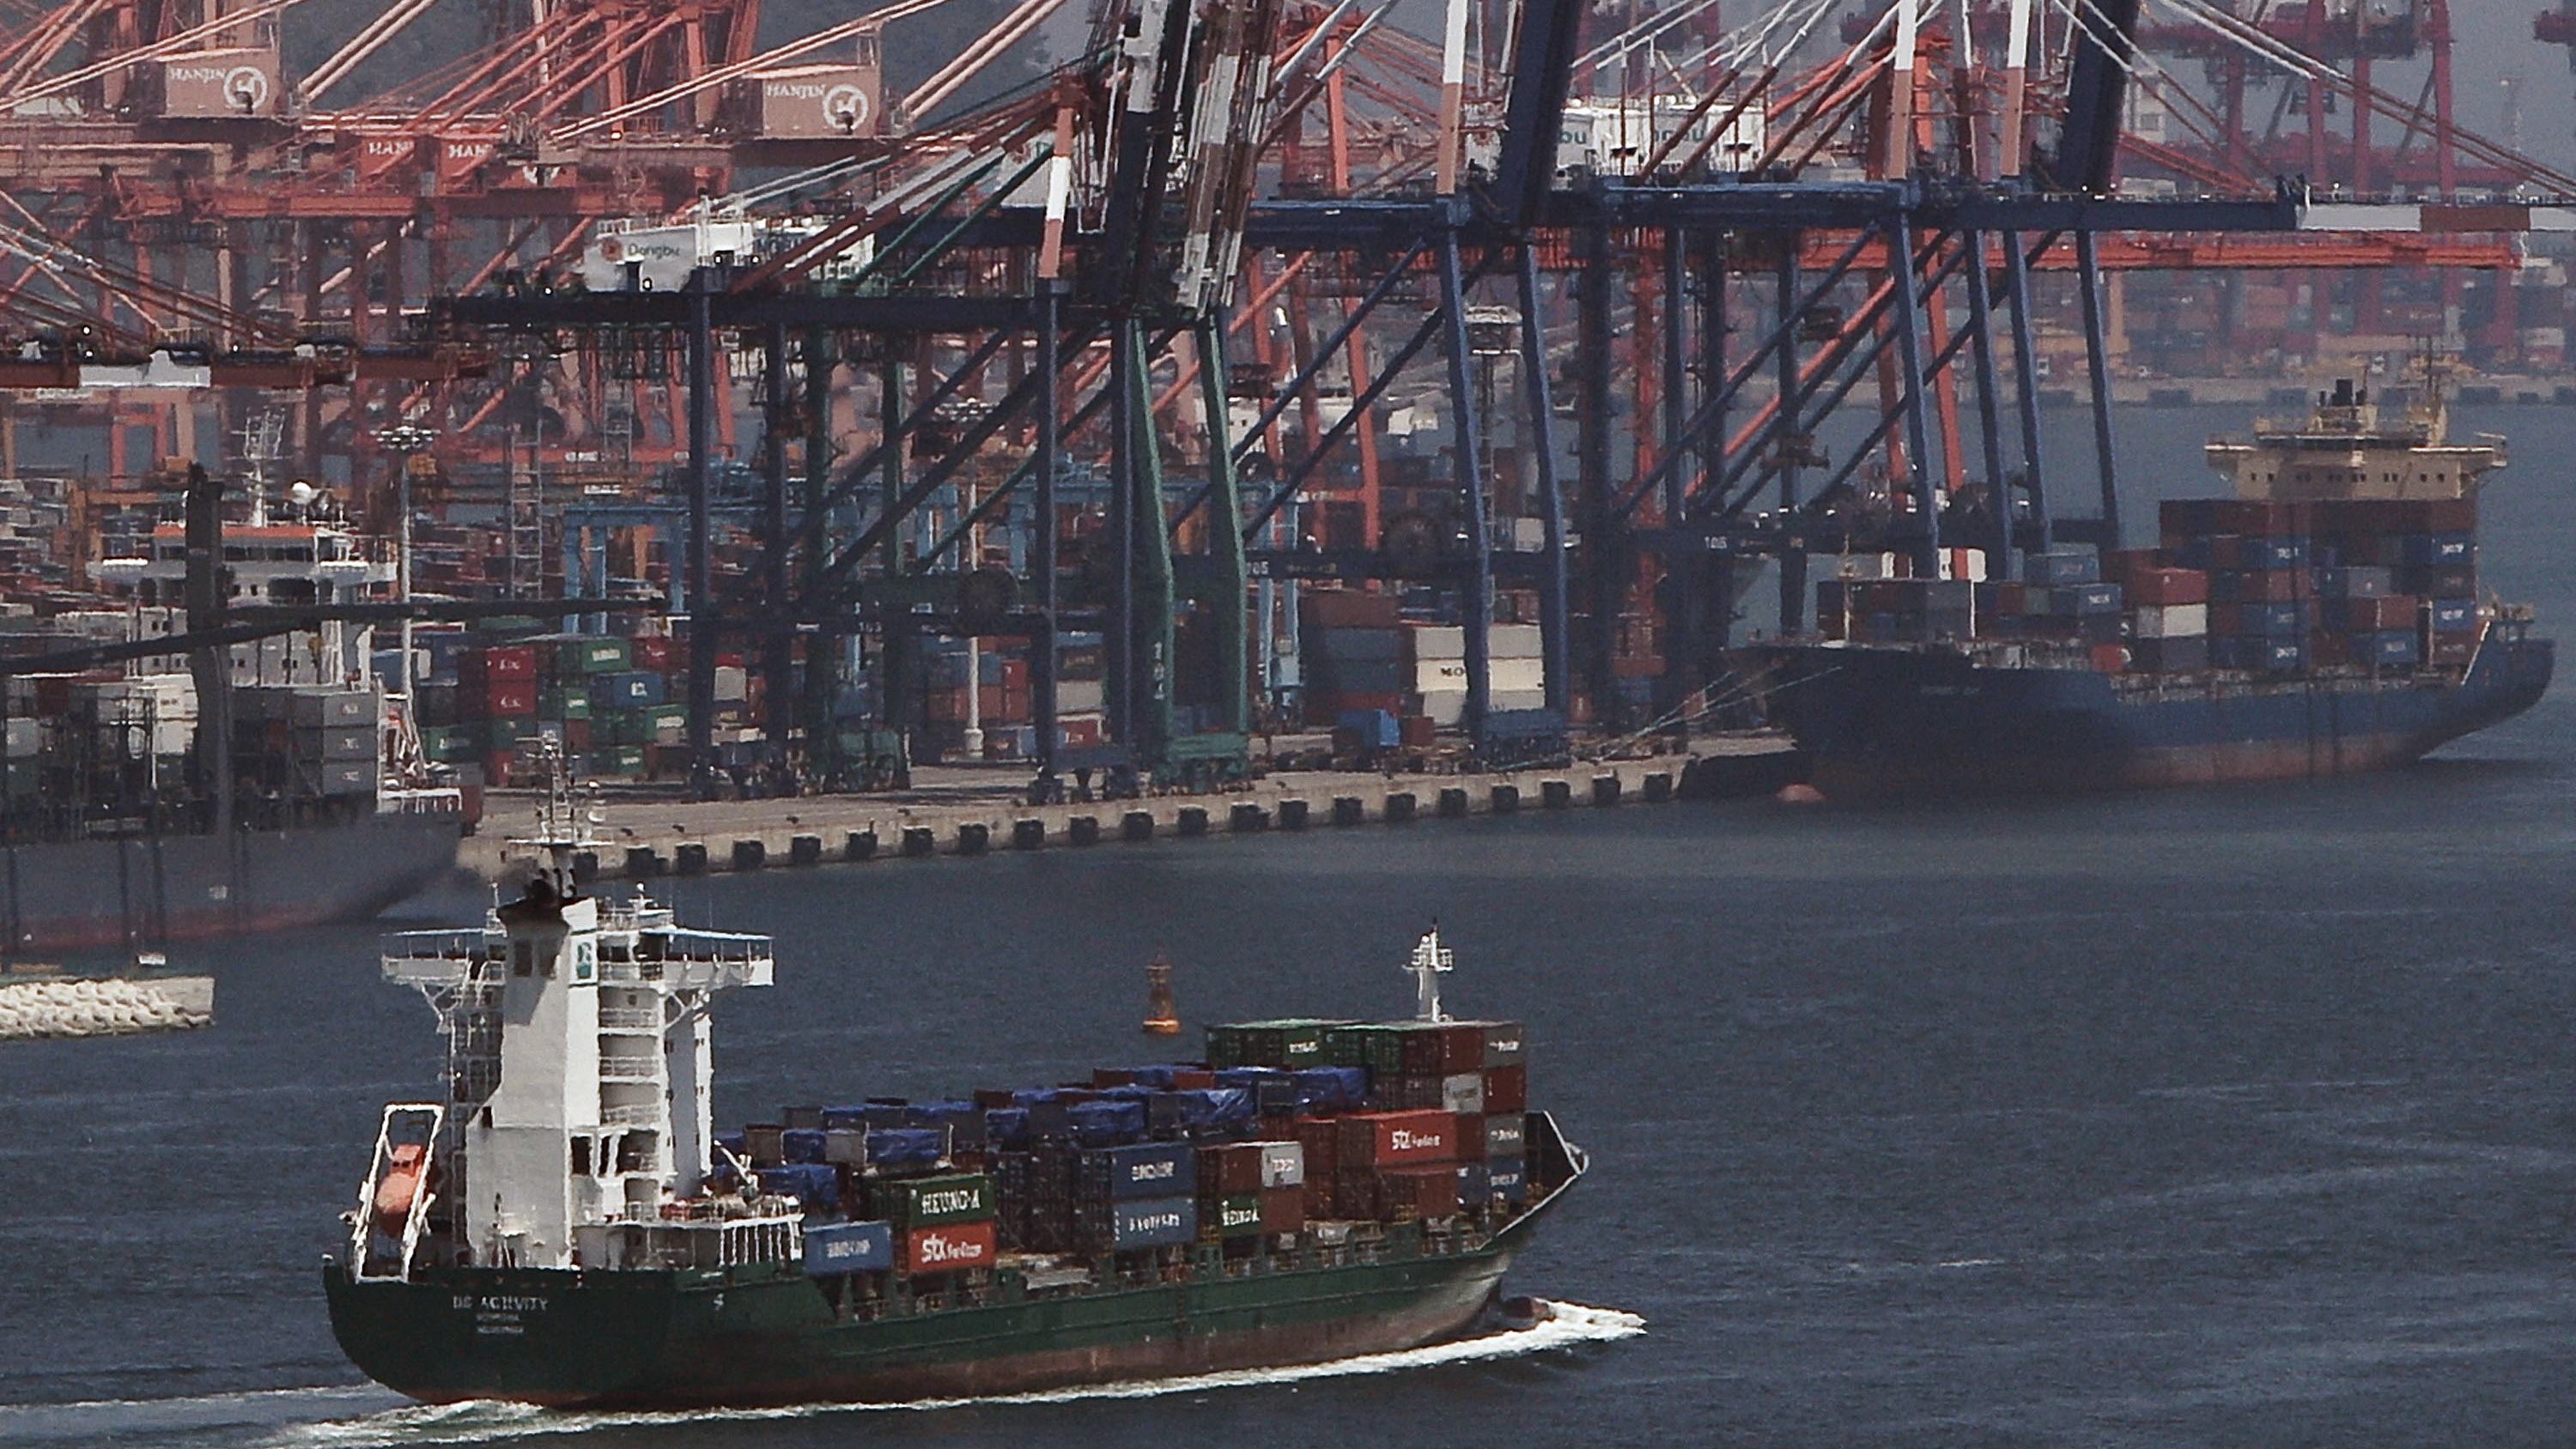 A container ship passes by a port in Busan, South Korea Thursday, June 3, 2010. Finance officials from leading advanced and emerging countries began talks Thursday aimed at hammering out reforms to the global economic system to prevent debilitating crises such as the one that dragged the world to the verge of a depression in 2008. (AP Photo/Andy Wong)